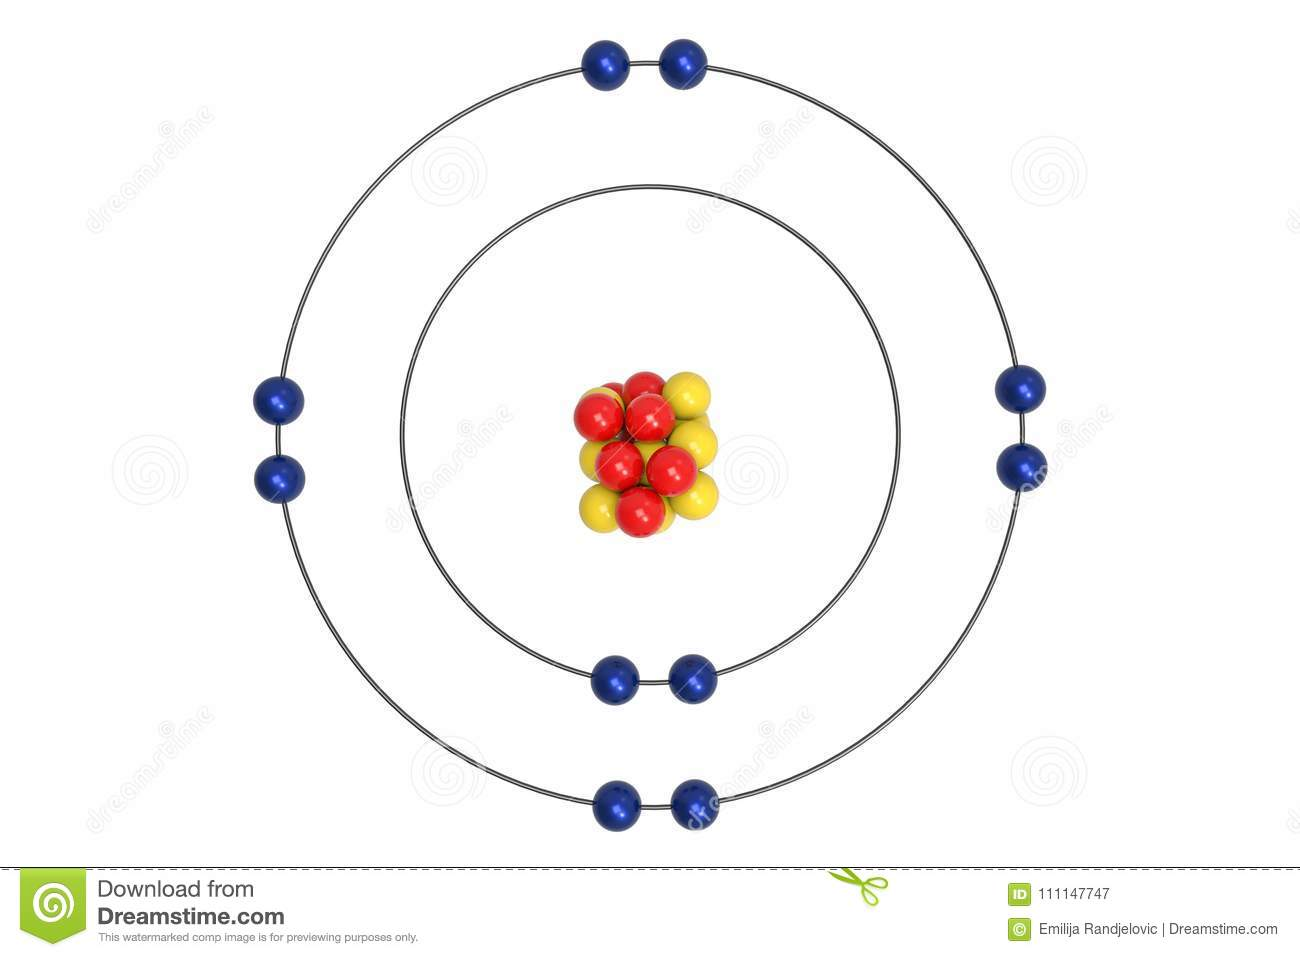 Bohr Diagram For Neon Wiring Strategy Design Plan Craftsman 358 794742 Atom Model With Proton Neutron And Electron Stock Rh Dreamstime Com